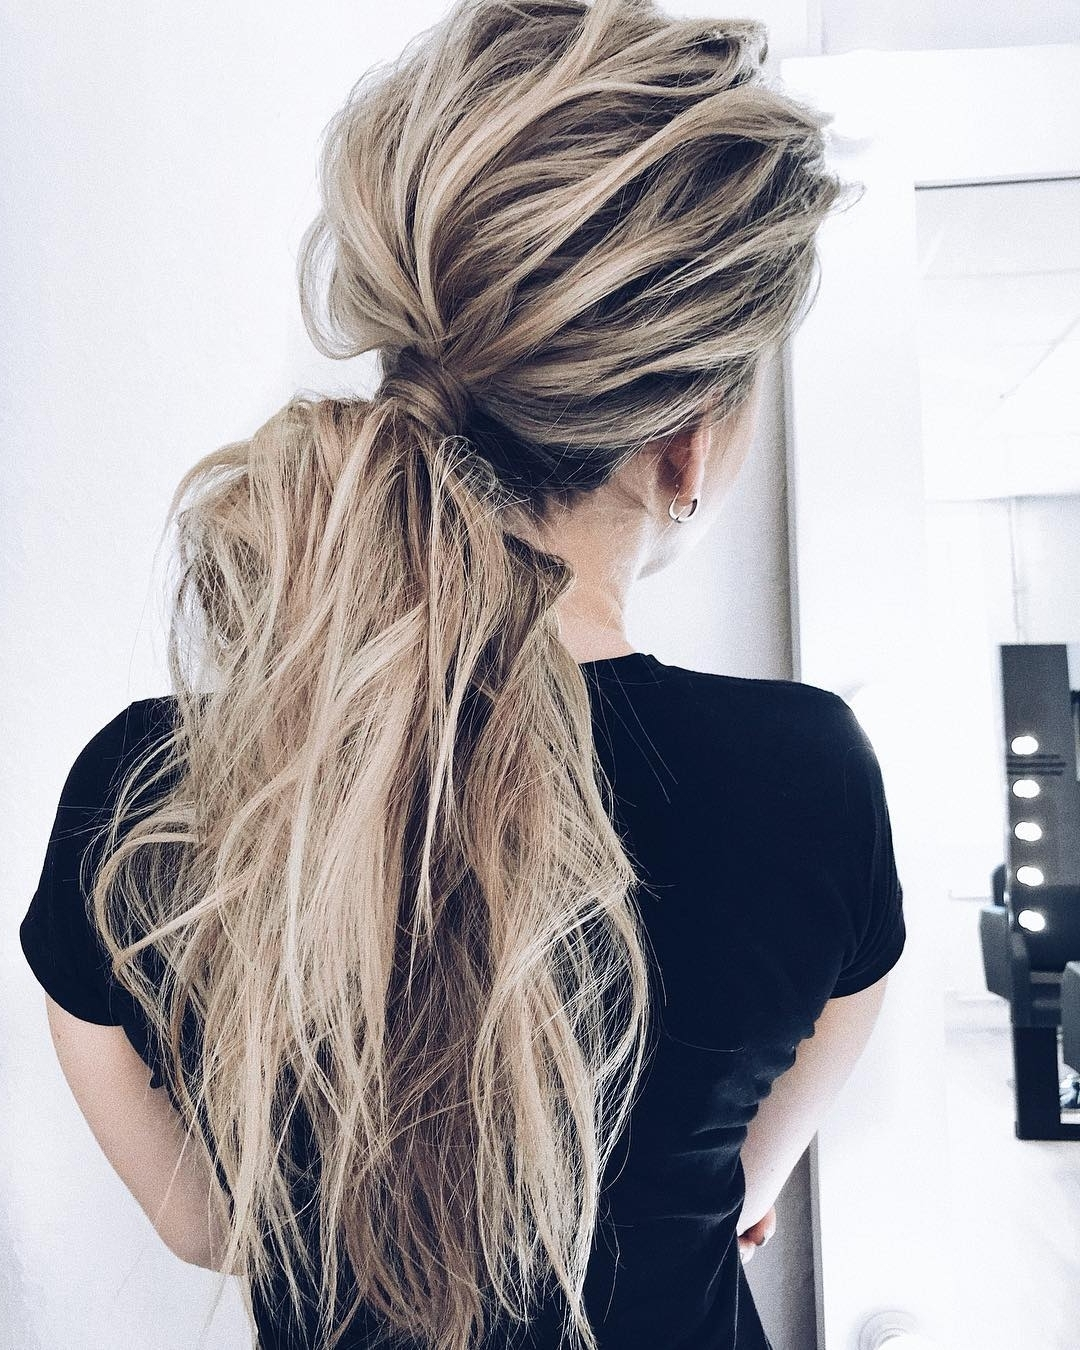 10 Creative Ponytail Hairstyles For Long Hair, Summer Hairstyle Intended For 2017 Loosely Braided Ponytail Hairstyles (View 1 of 20)